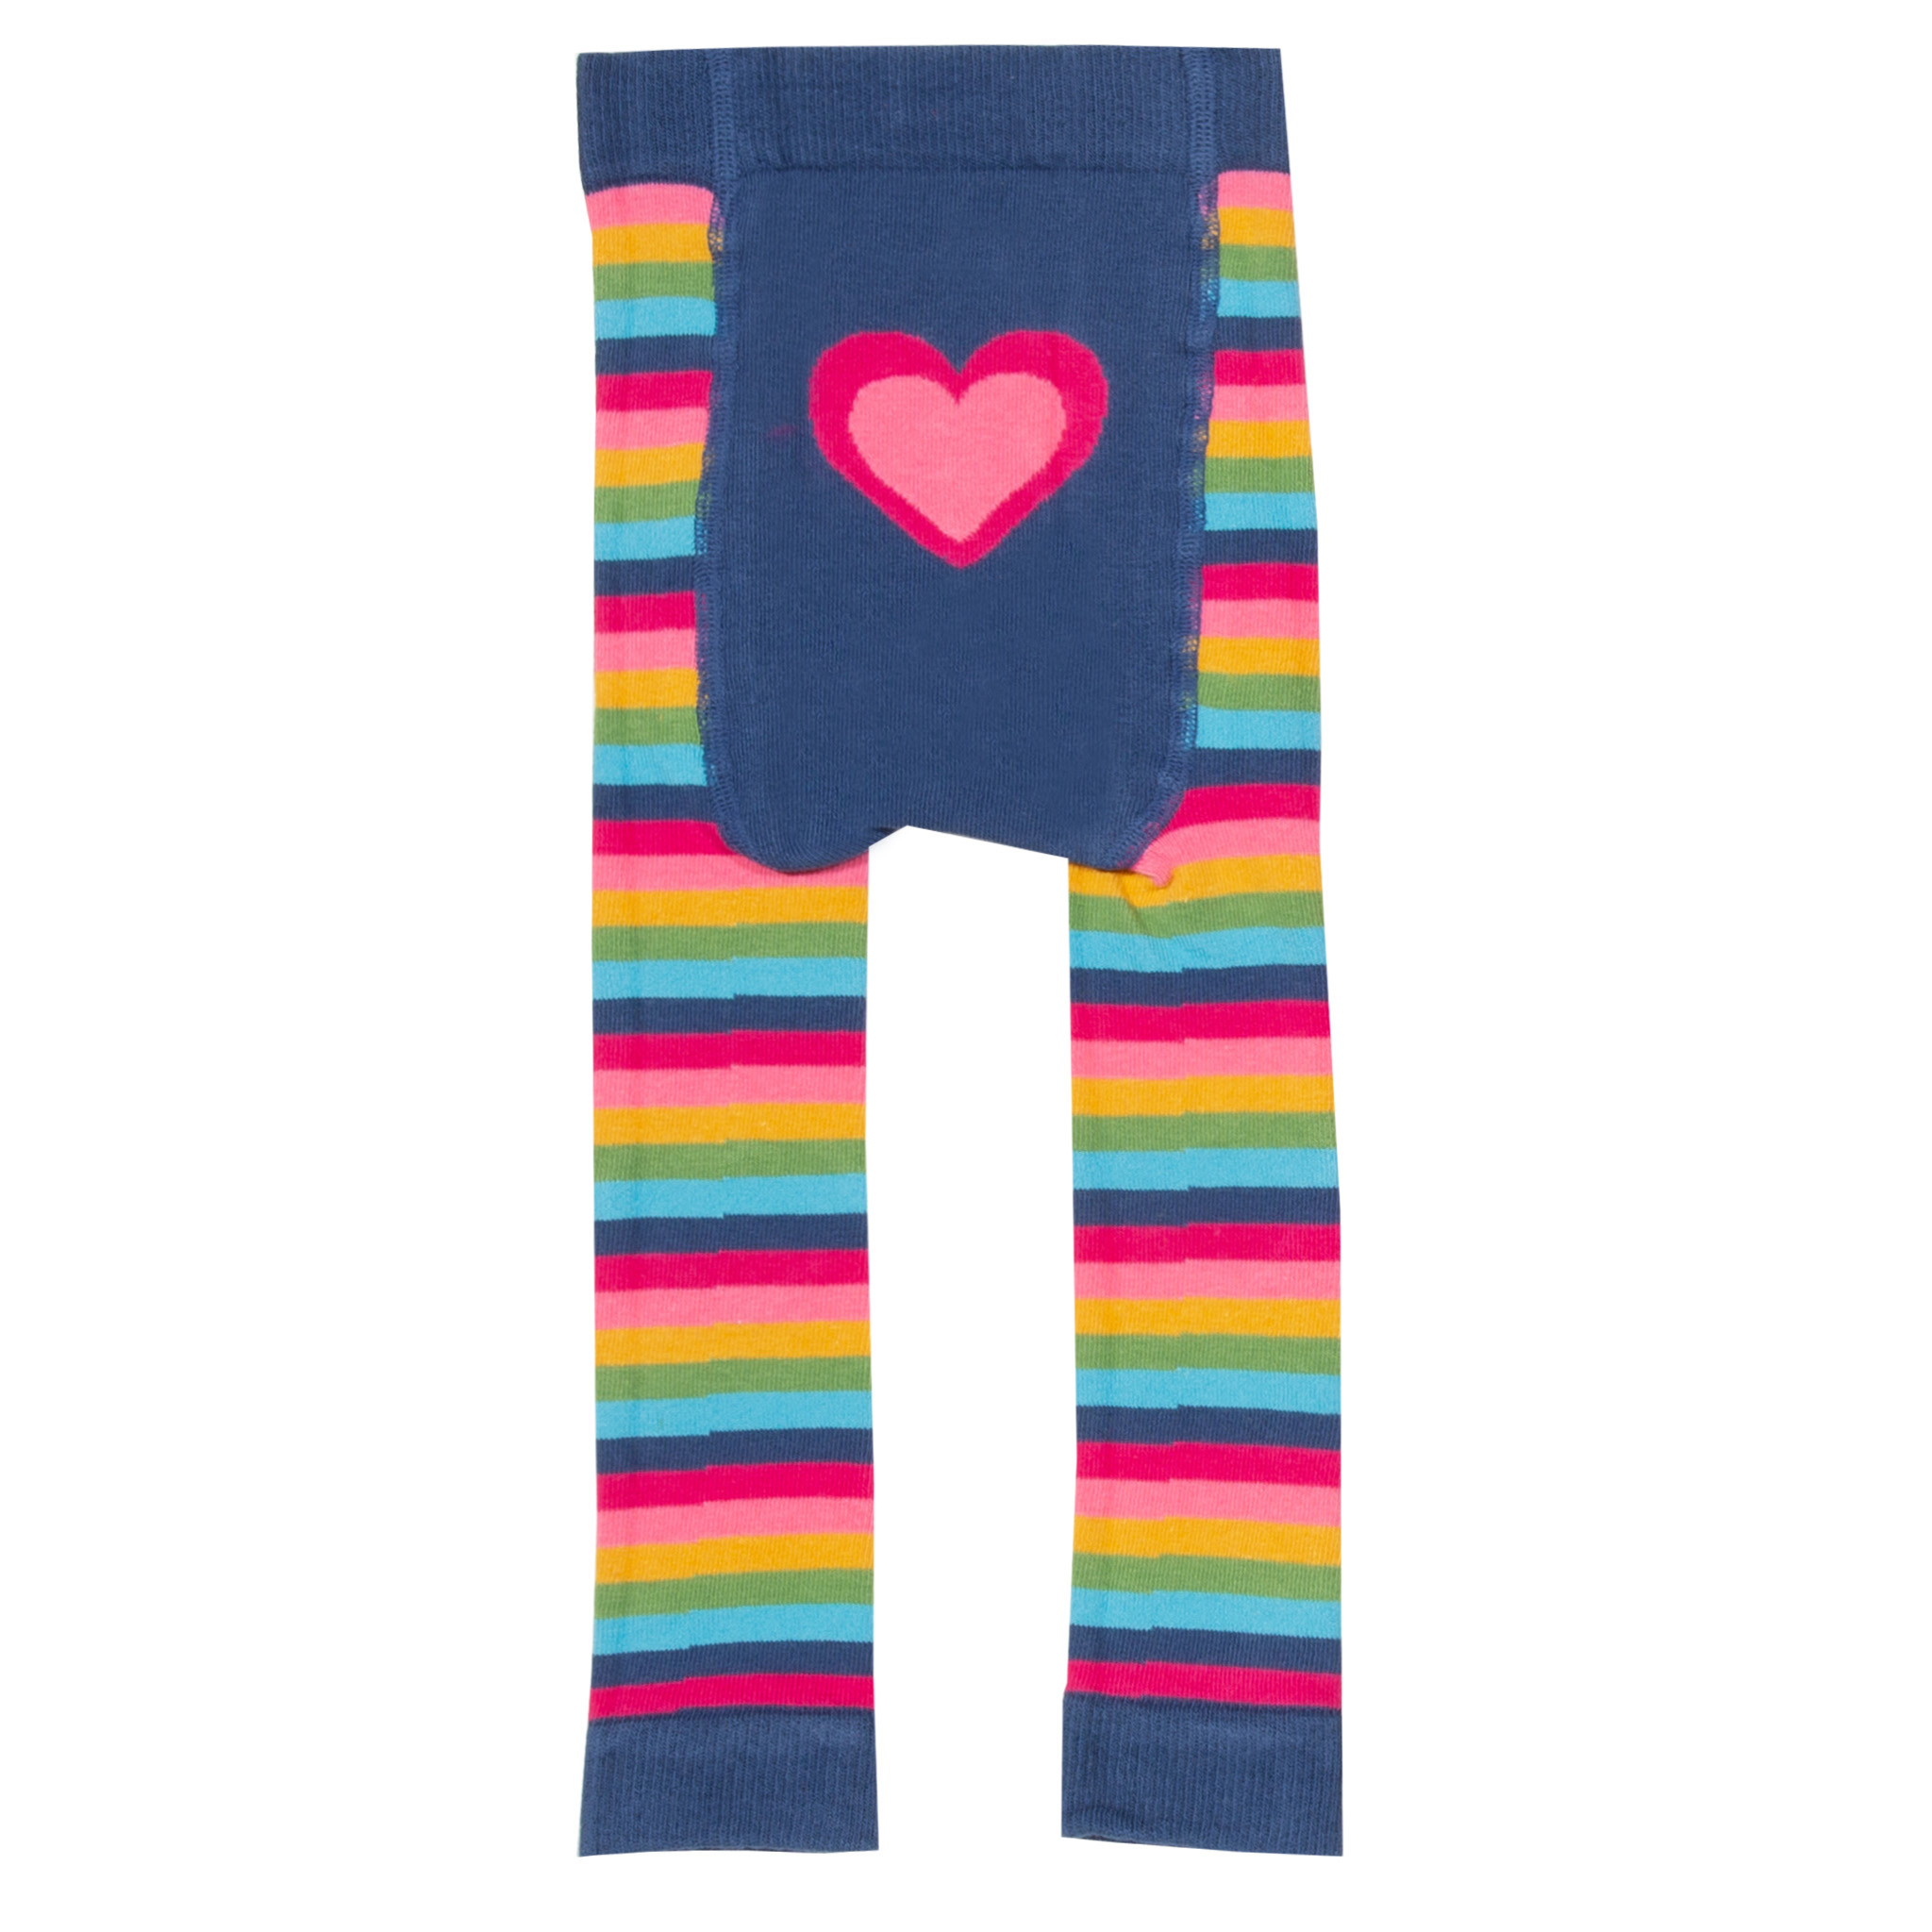 Kite Stripy Heart Knit Leggings (Was £14.00)